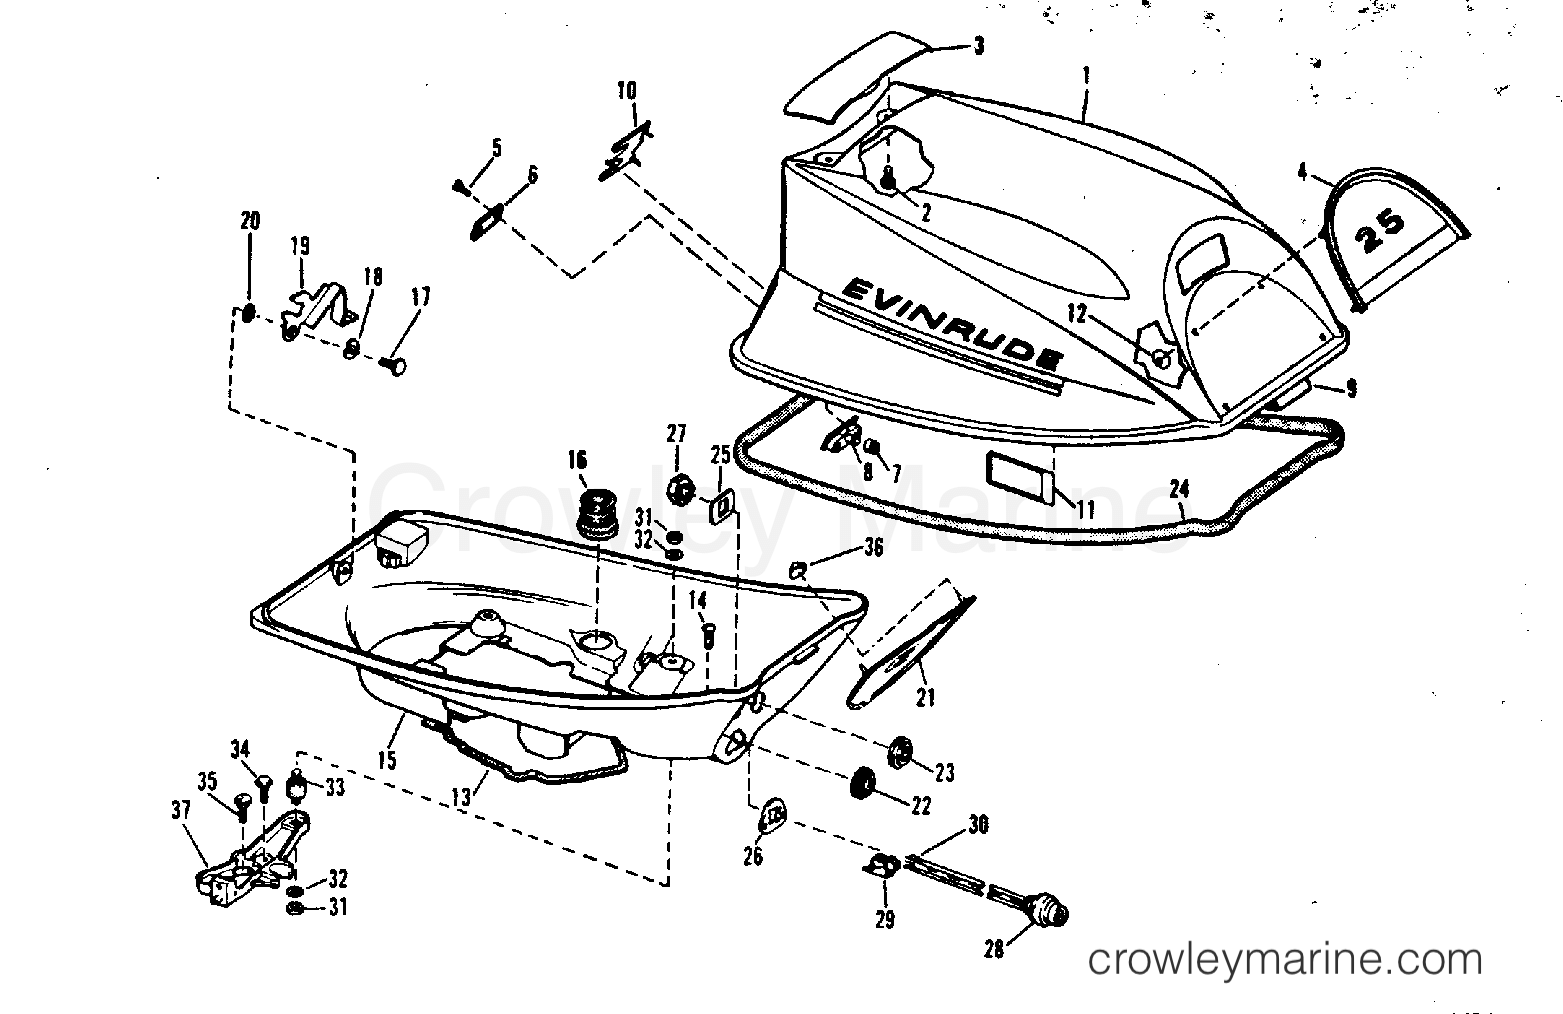 Motor Cover Group